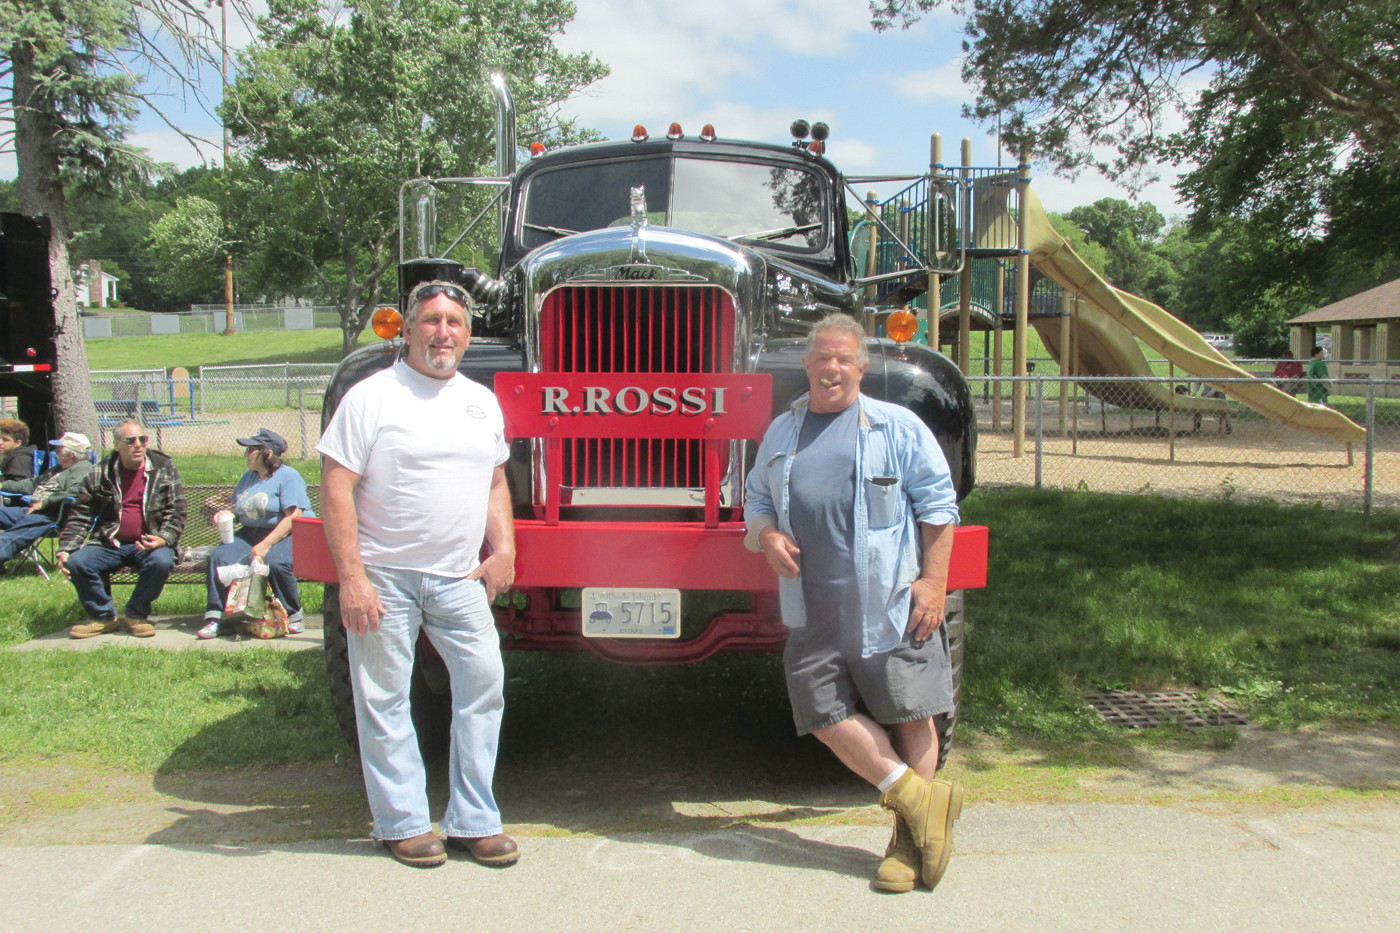 OUTSTANDING OFFICIALS: Johnston's Joe Pingitore (left) and Cranston's Ron Rossi enjoy a lighter moment during Sunday's free to the public Ocean State Vintage Haulers show that lined War Memorial Park with a variety of different make and model trucks.